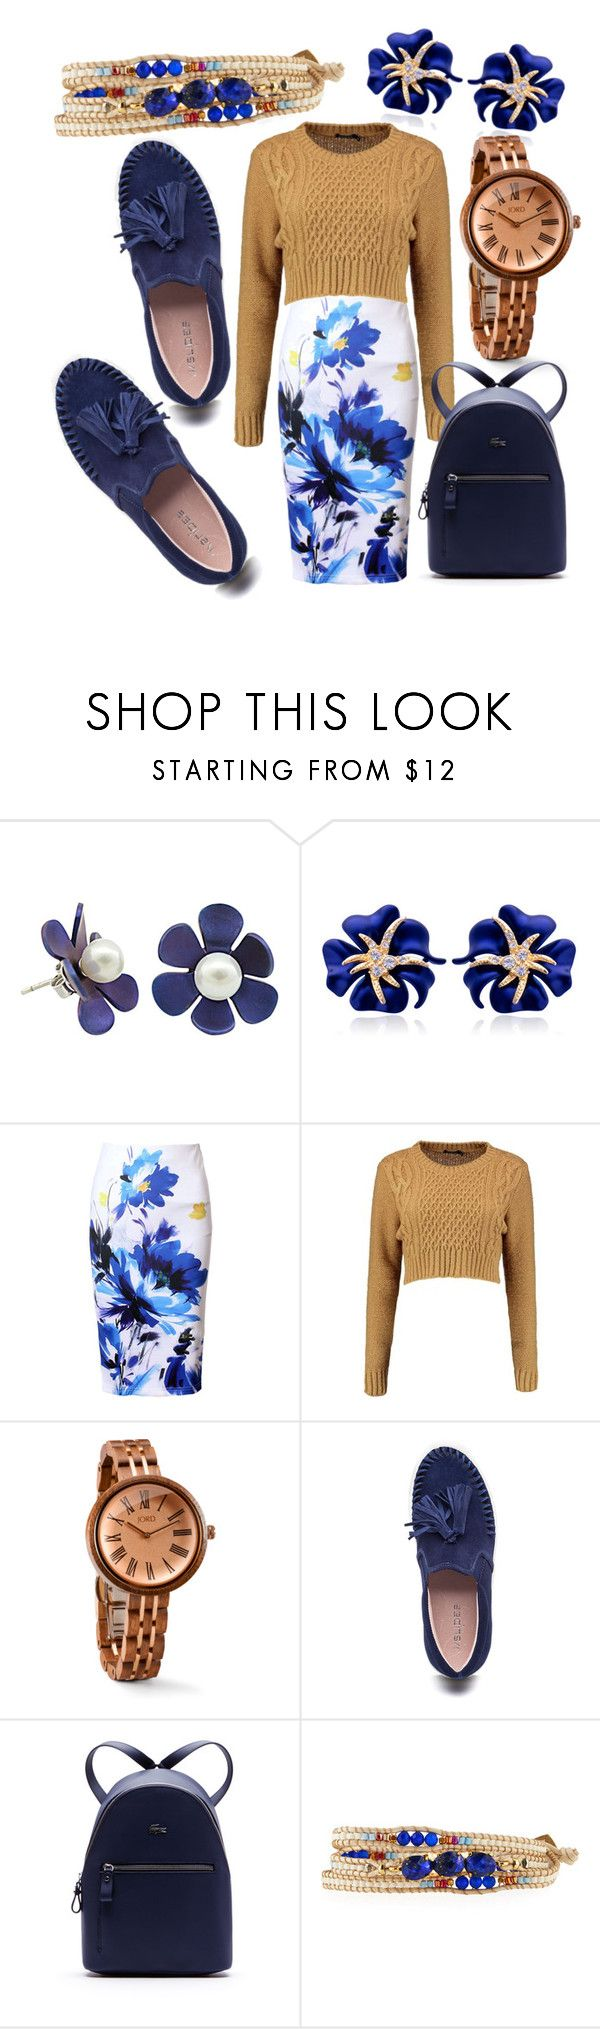 """""""Navy and Gold Business dress Jord Wood Watch"""" by donutsanddrama on Polyvore featuring WithChic, J/Slides, Lacoste and NAKAMOL"""